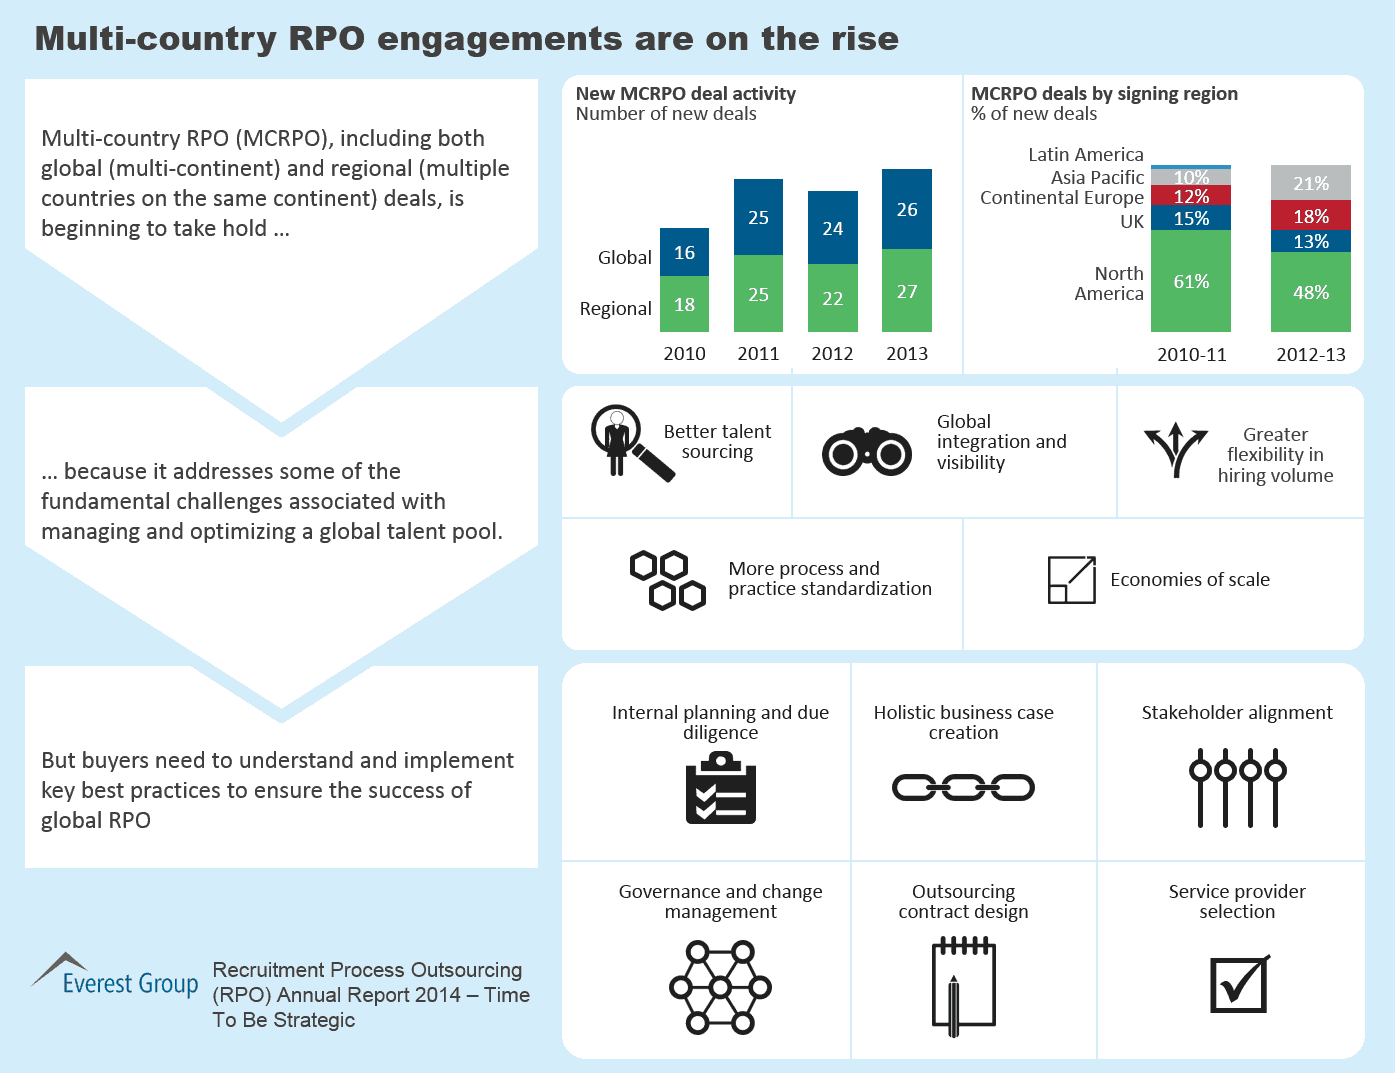 RPO Annual Report 2014, I2